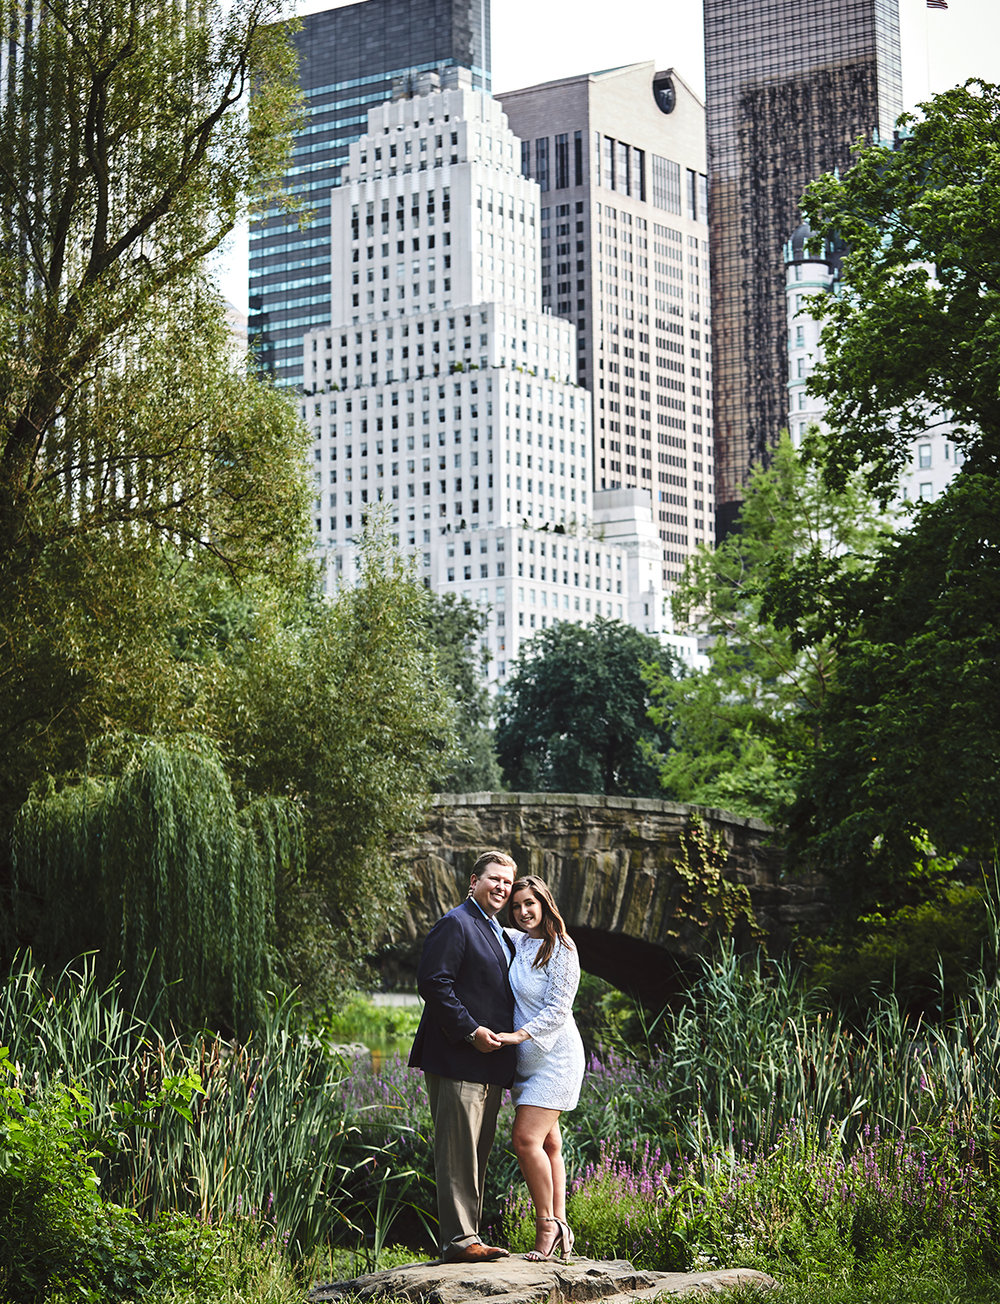 170811_EngagementPhotography_CentralParkEngagement_By_BriJohnsonWeddings_0003.jpg